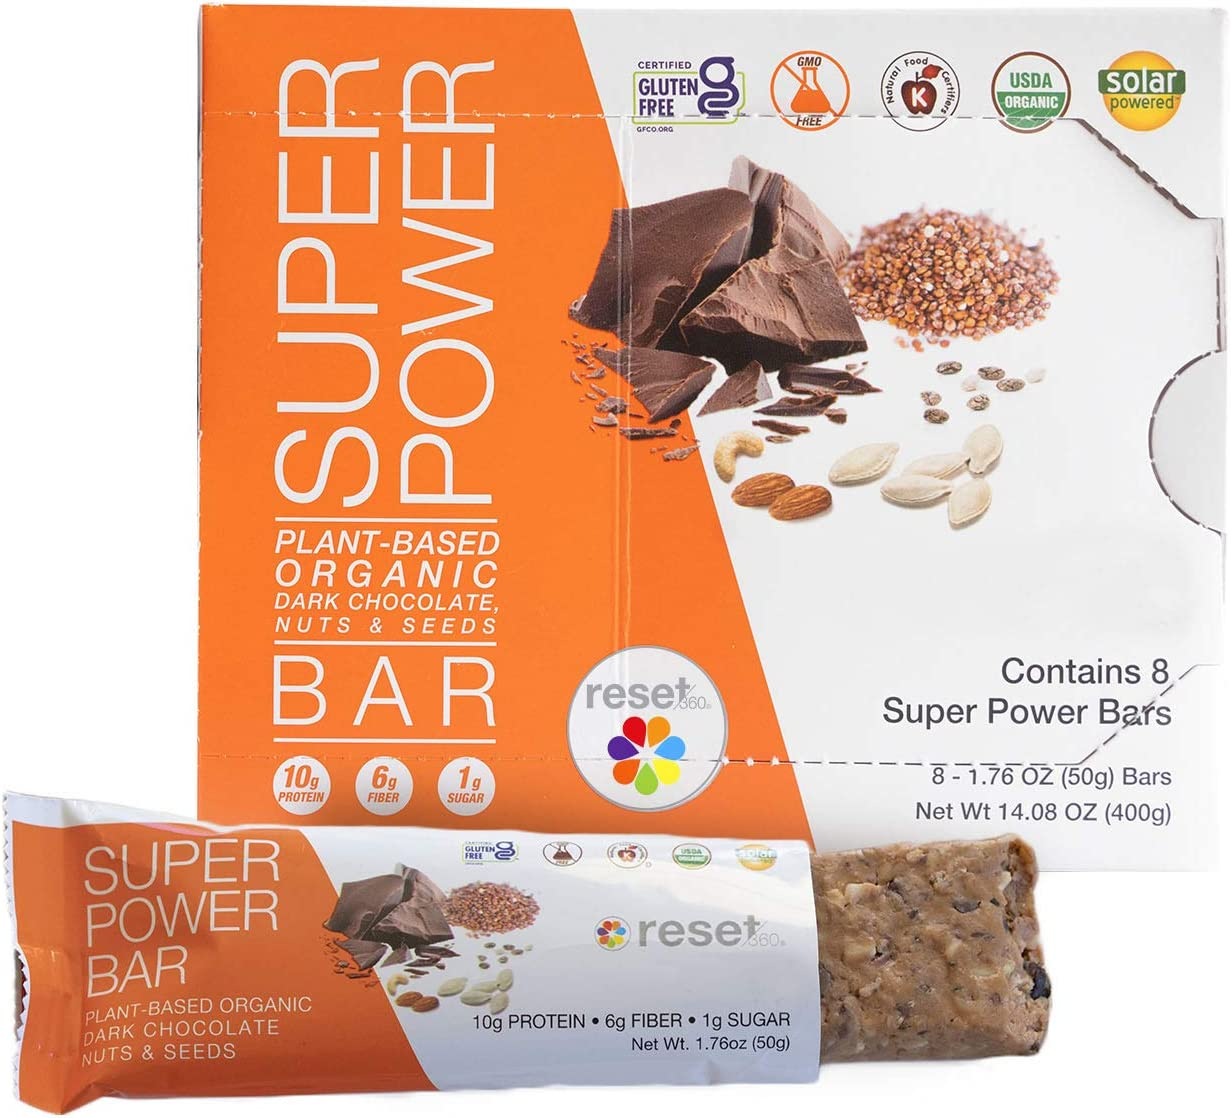 Reset360 Super Power Bar | Healthy Snack Bars, USDA Certified Organic Energy Bars, Plant Based Protein, Gluten & GMO Free Meal Replacement Bars | Dark Chocolate, Nuts and Seeds, 8 Bars per Box, 1 Pack